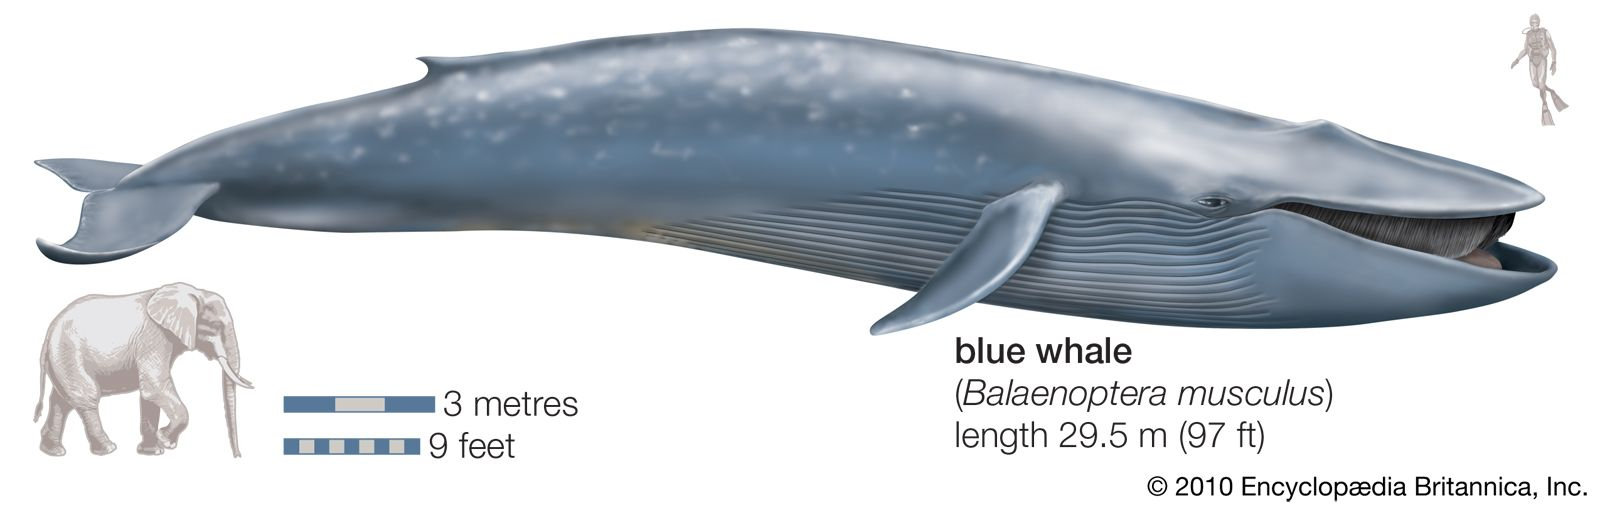 Image result for blue whale vs human size